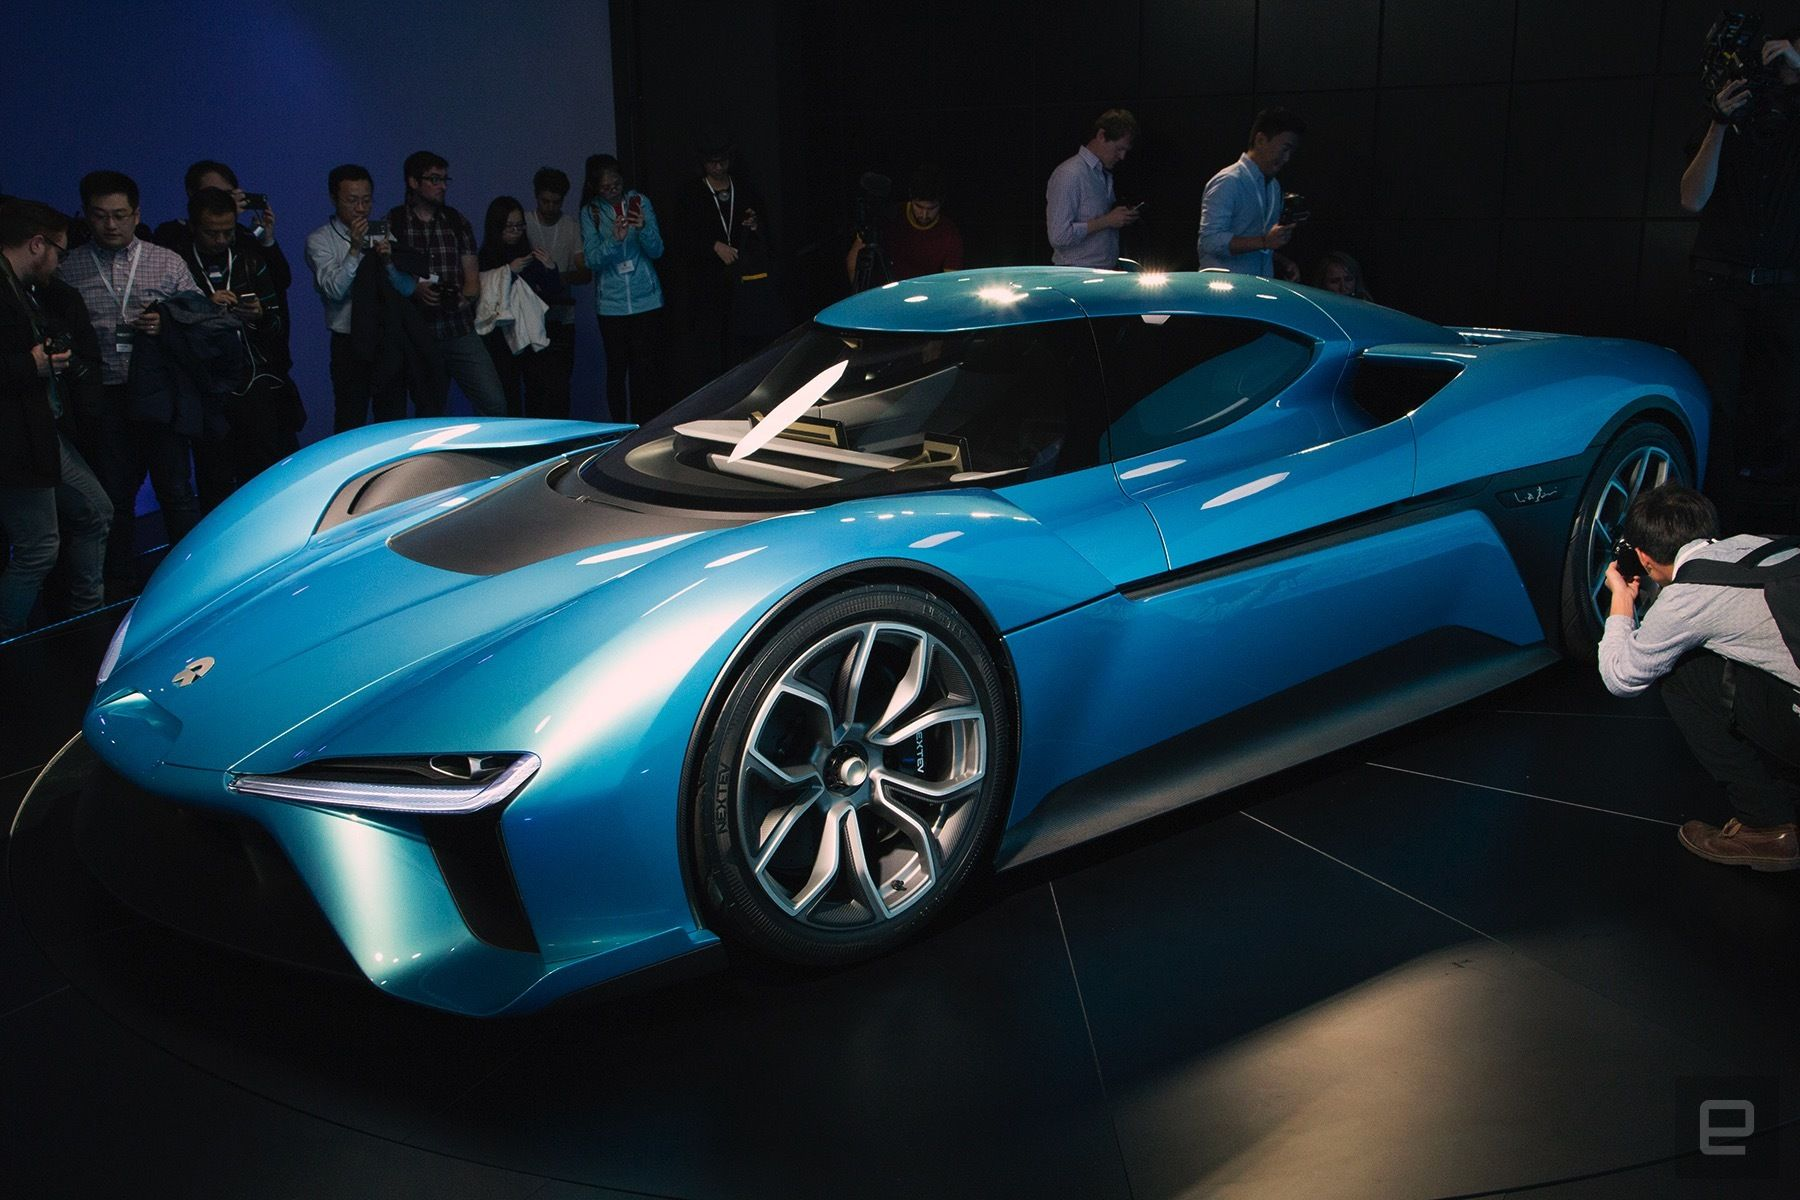 The NIO EP9 is the 'world's fastest' allelectric supercar